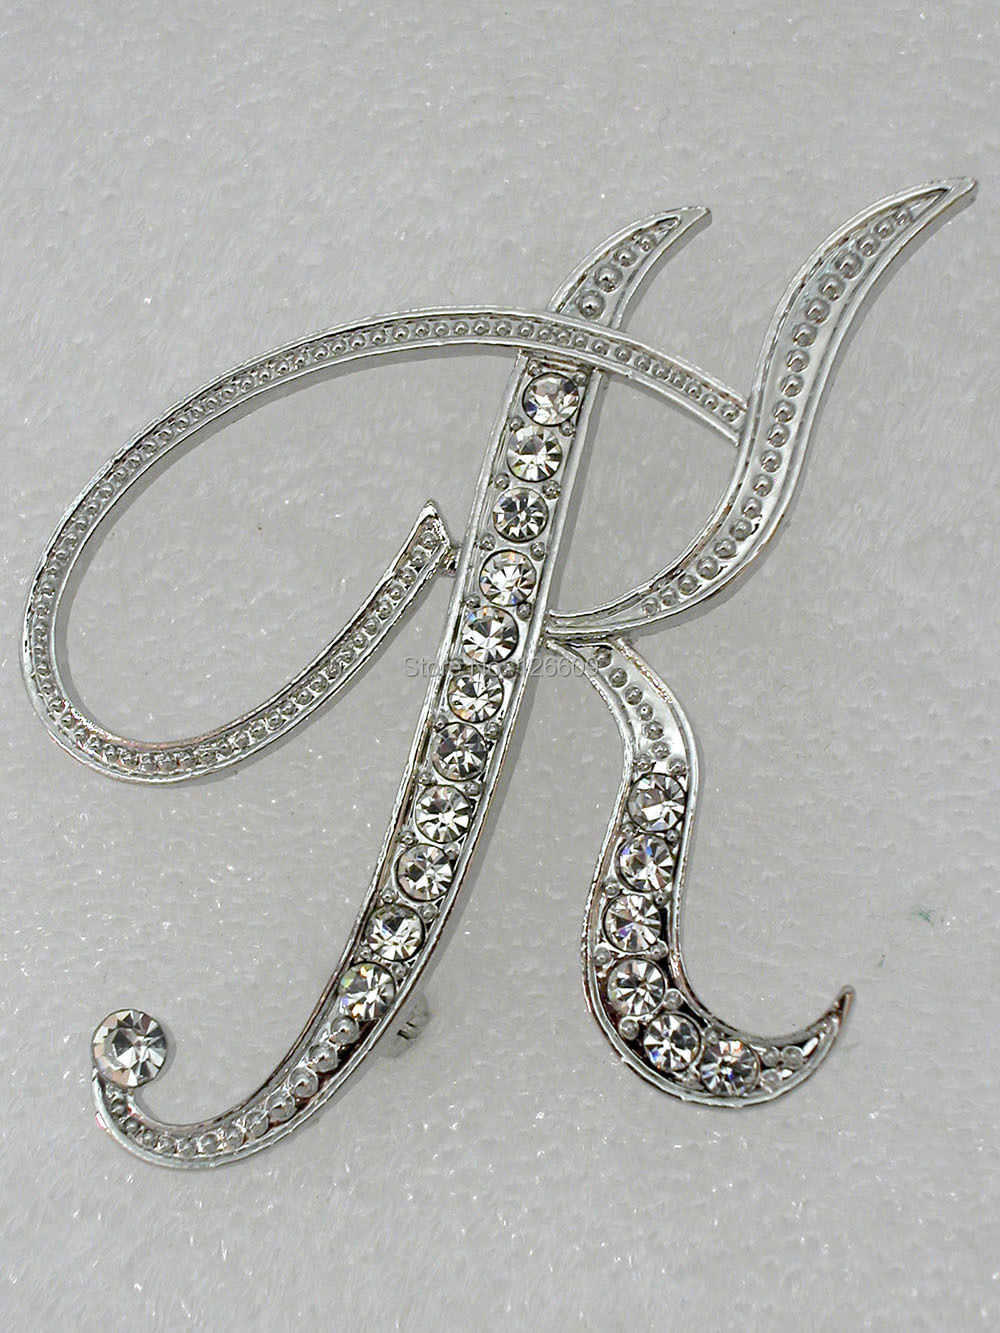 Clear Rhinestone Fashion Clothing letters K Crystal brooches pins gift jewelry C2070-K - Wei's Mall store